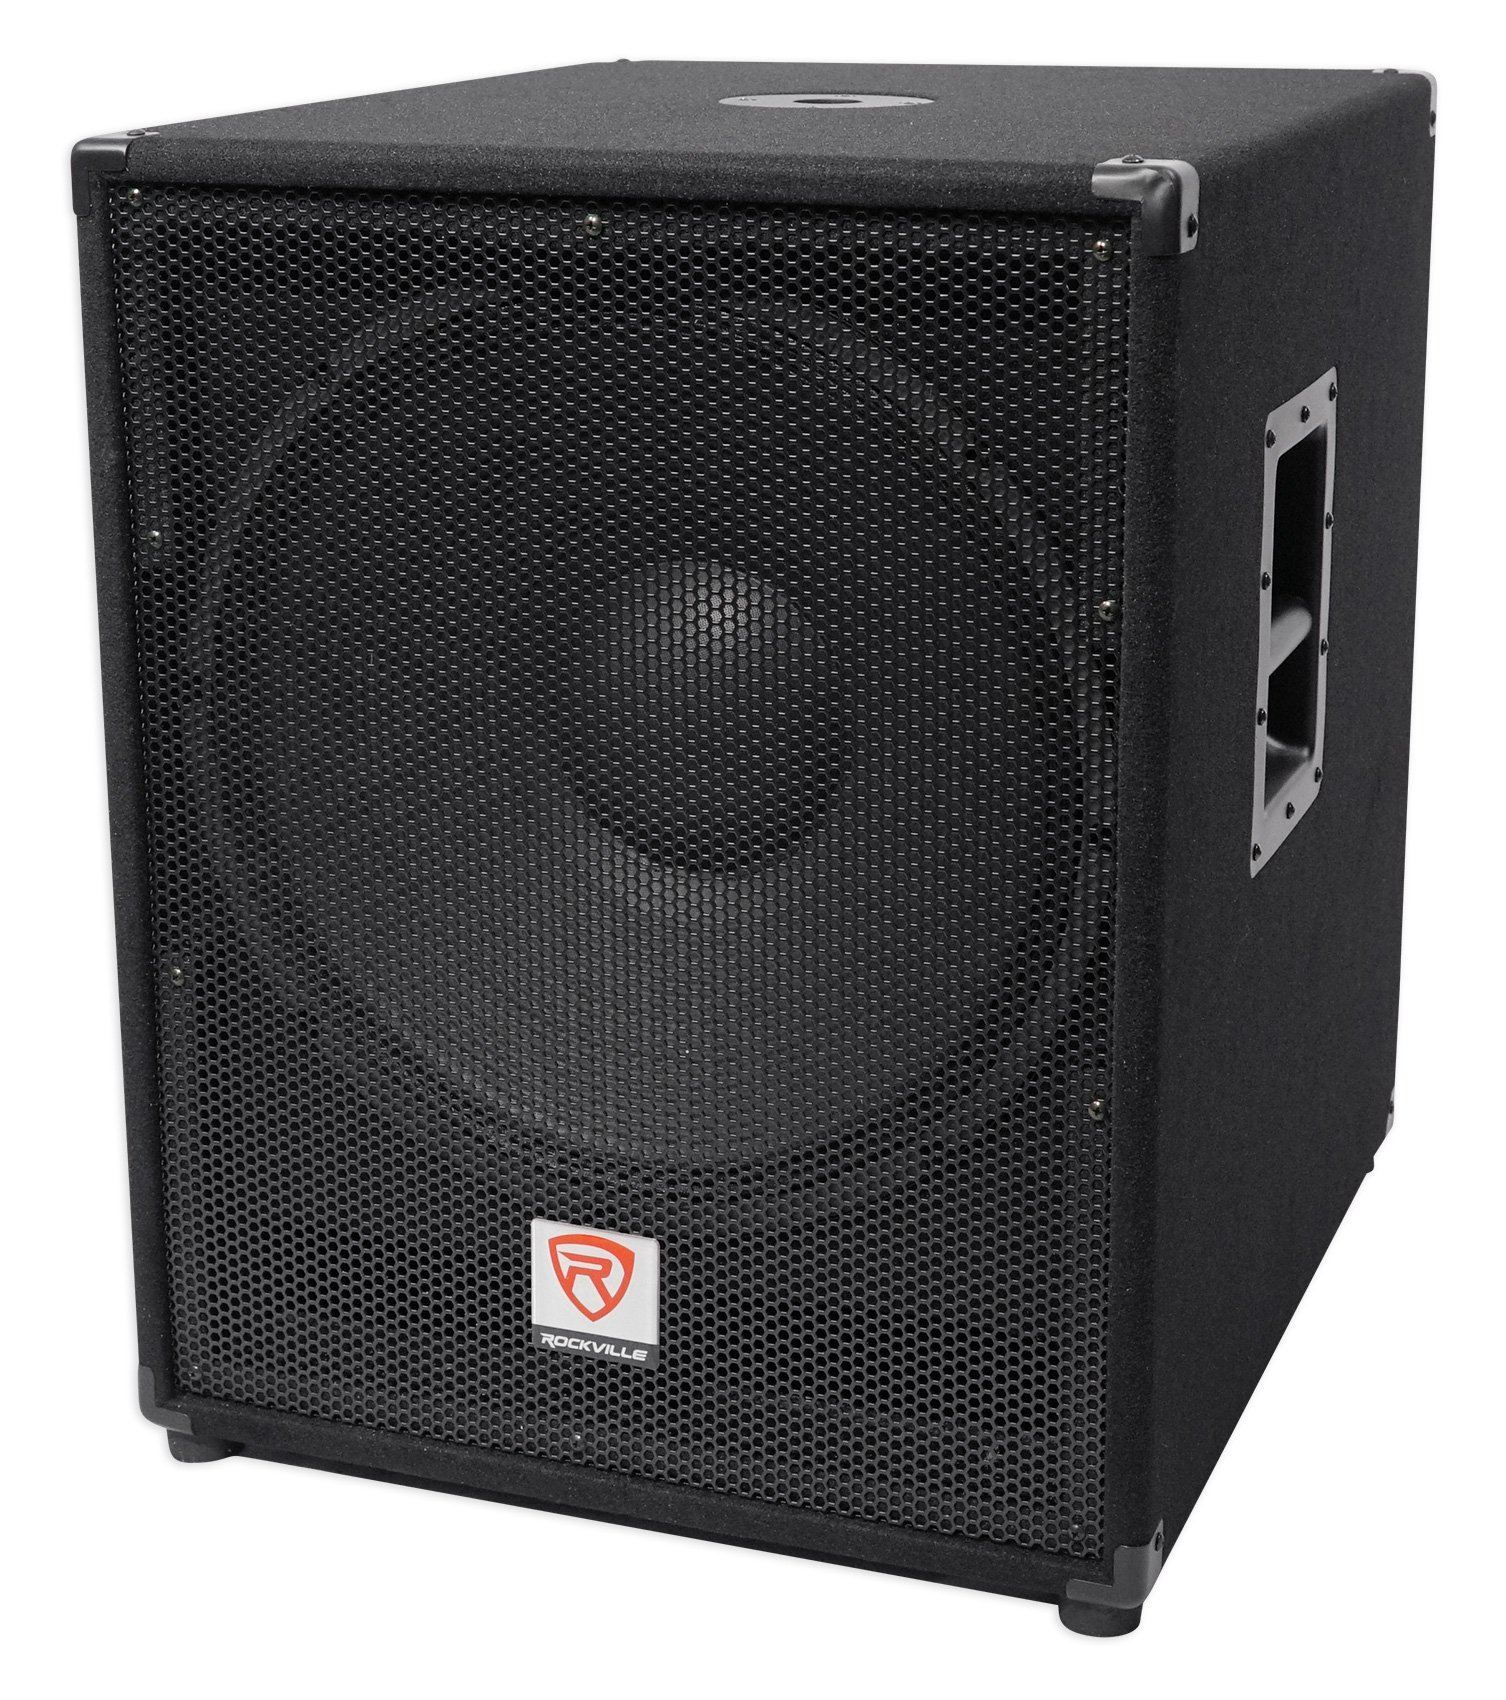 Rockville PBG18 18'' Passive 2000 Watt 8 Ohm Pro Audio Subwoofer Sub/MDF Cabinet by Rockville